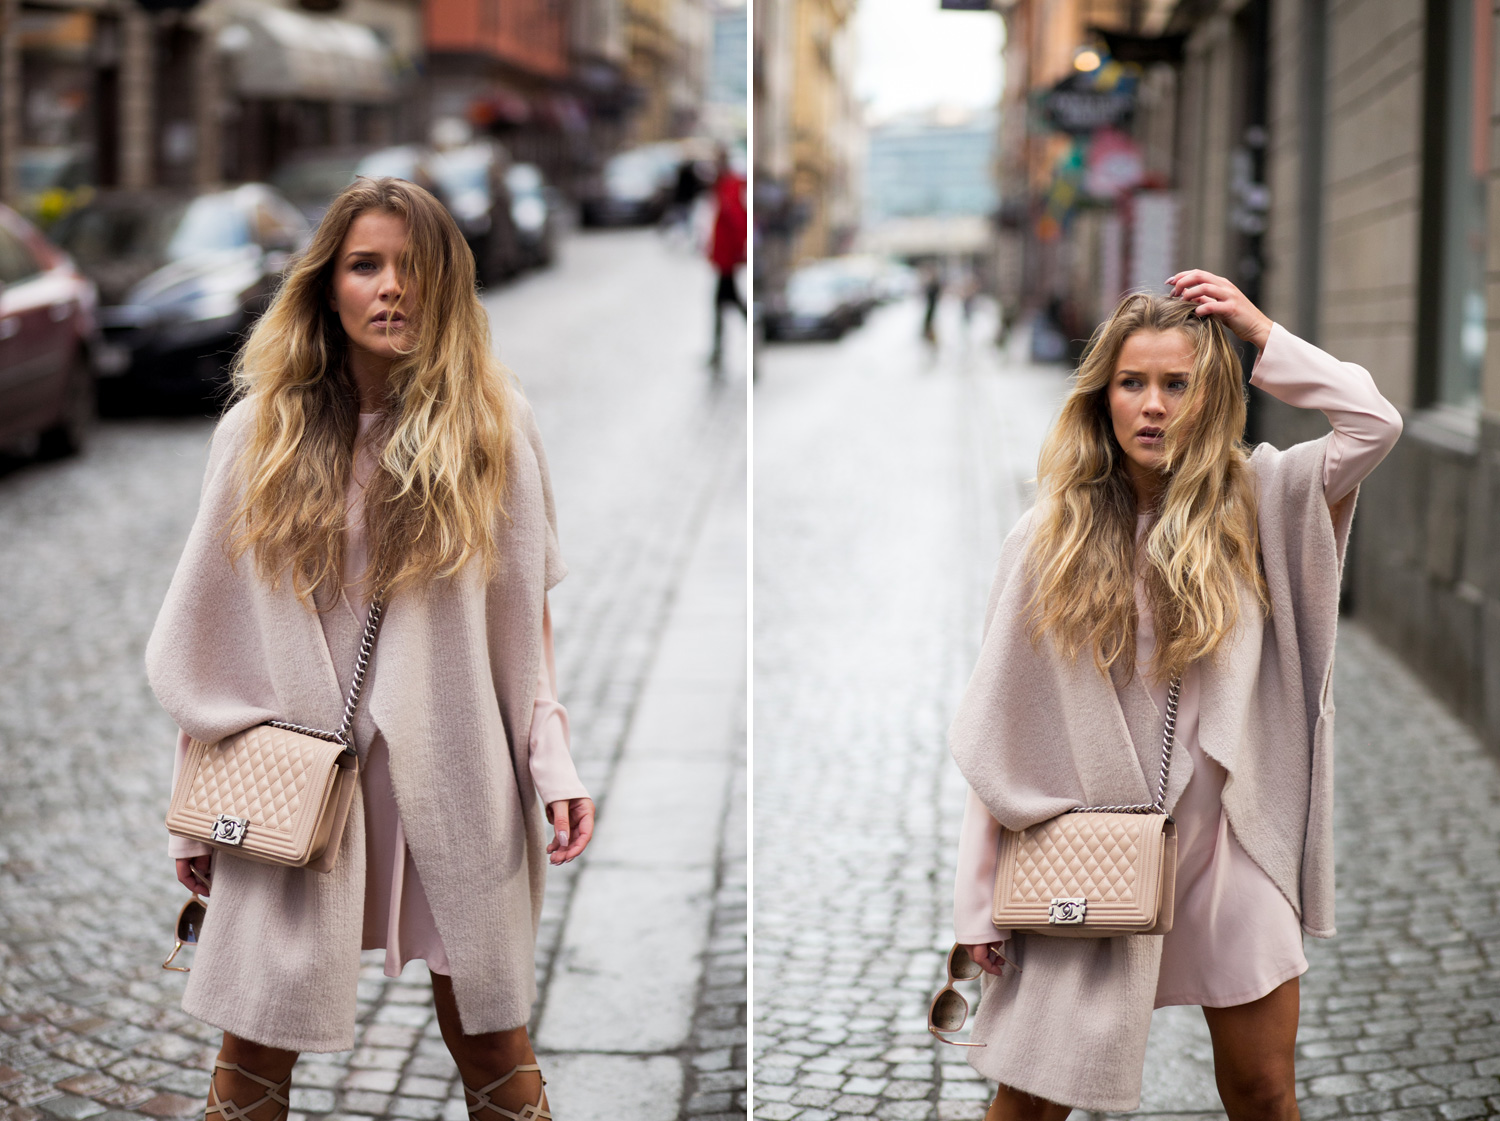 014-stockholm-blogger-fashion.jpg